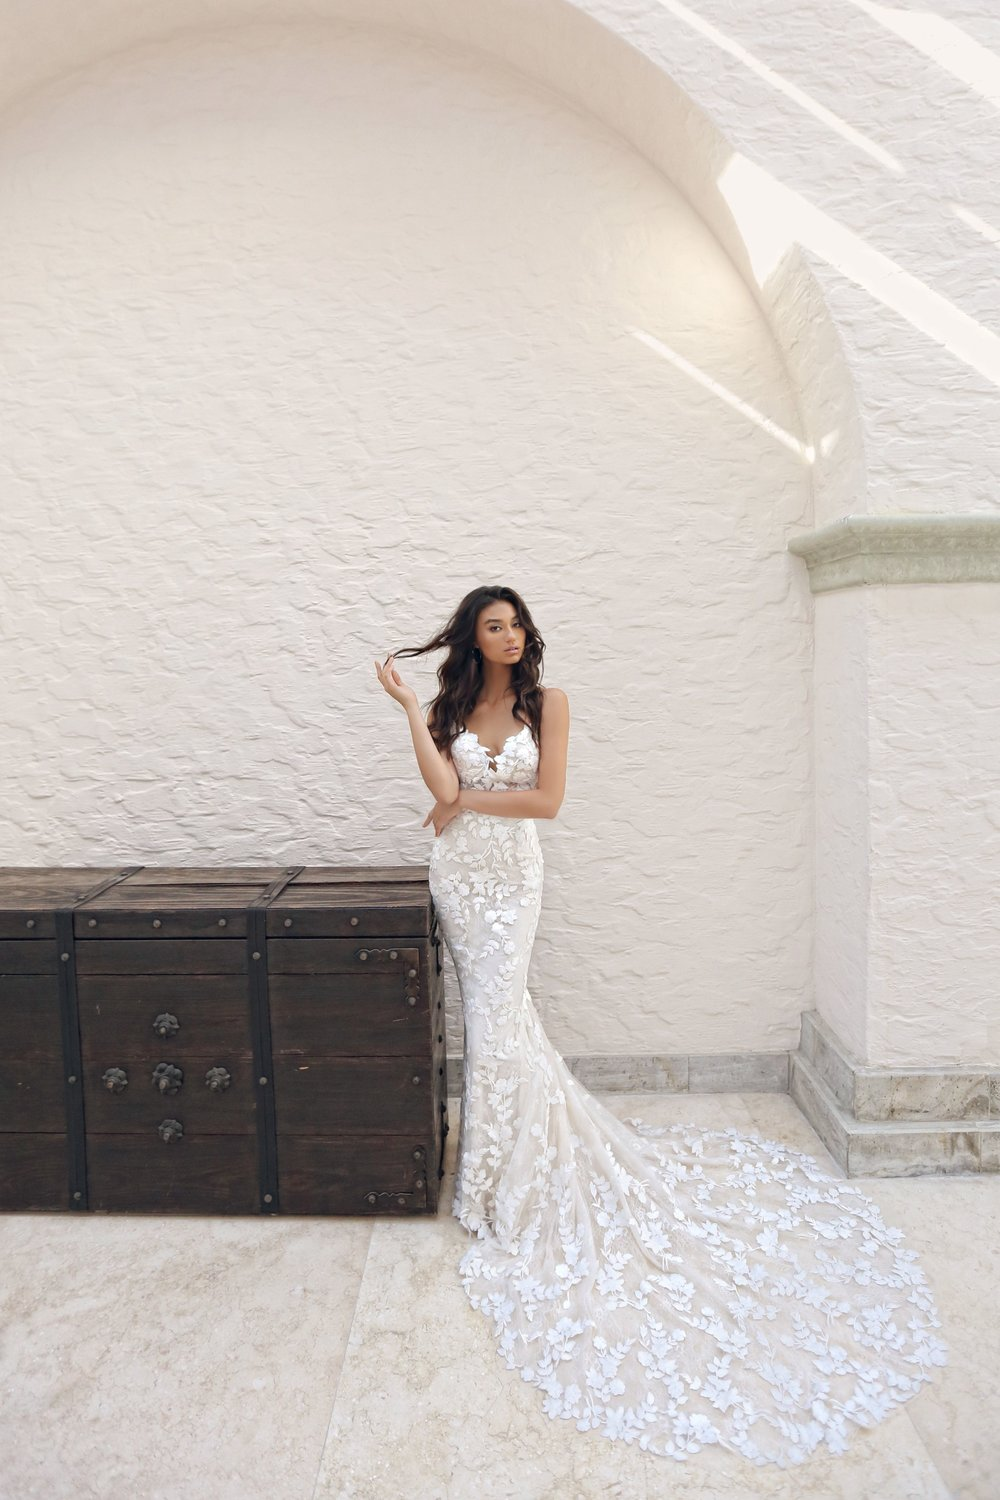 Enzoani 2019 - Our Blue by Enzoani collection is available to try on at White Bride now. Click to see more about Enzoani.